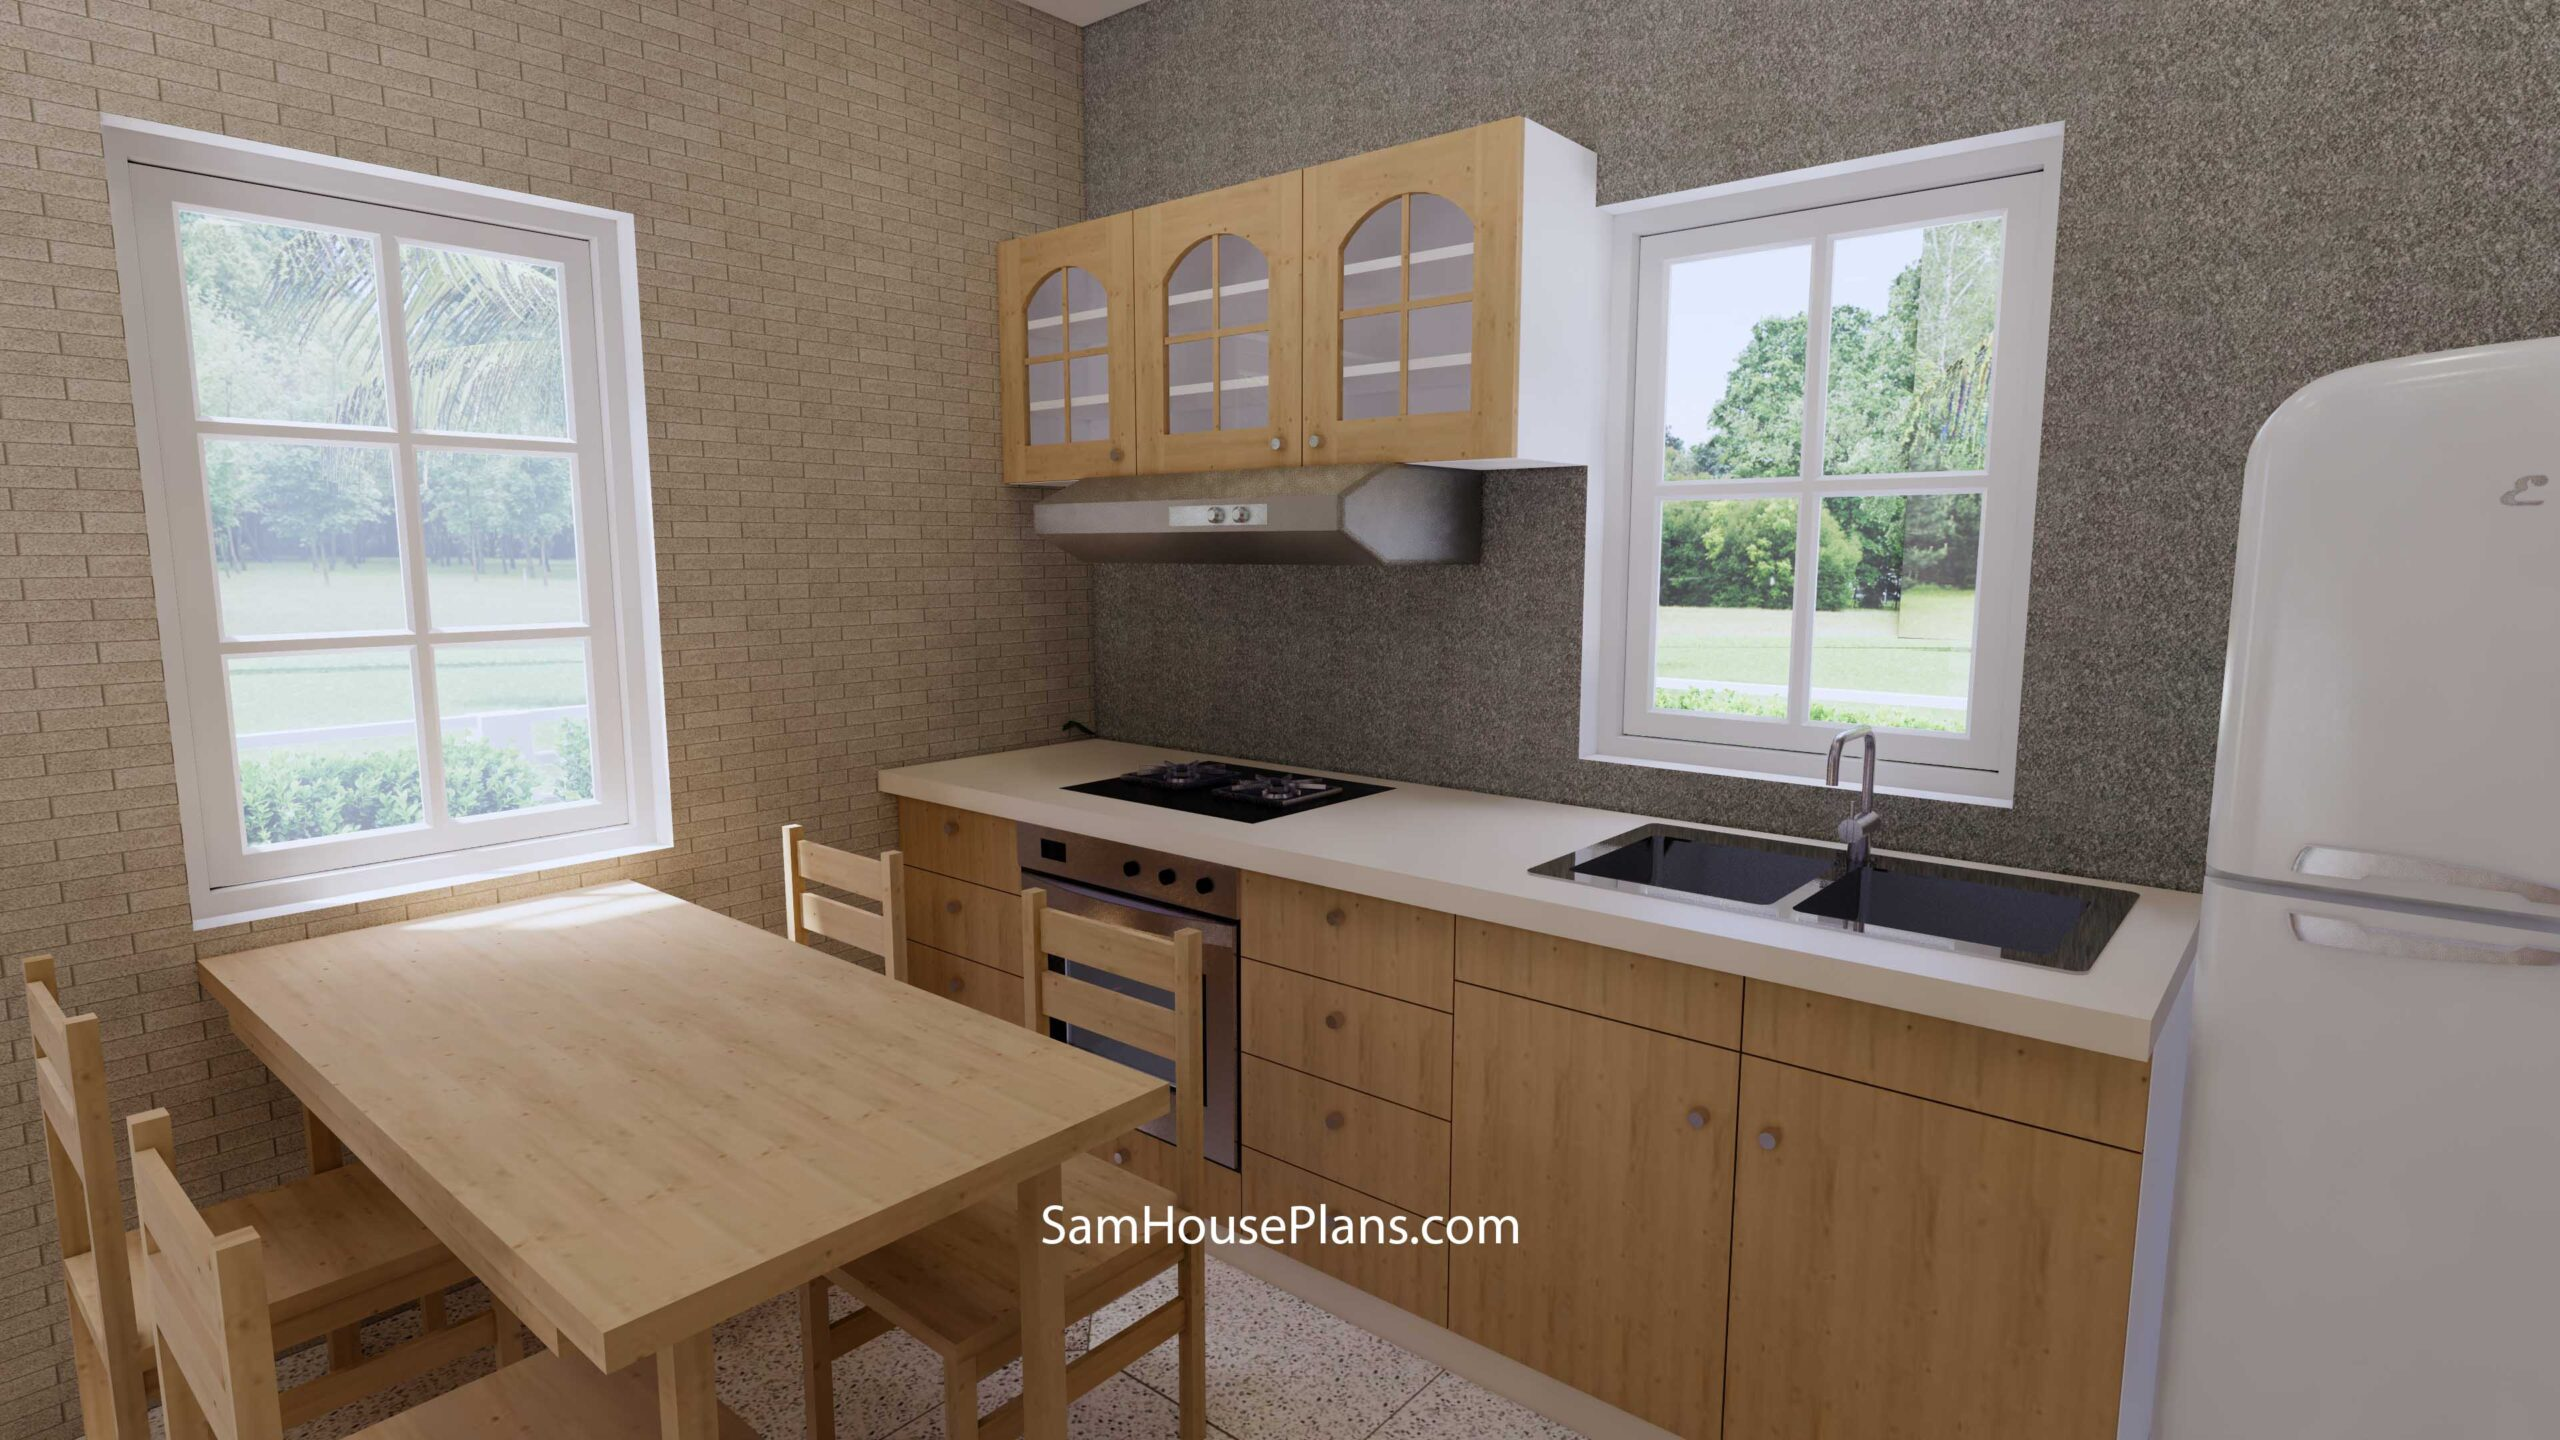 Small House Design 7x7 with 1 Bedrooms Flat Roof Flat Roof Kitchen